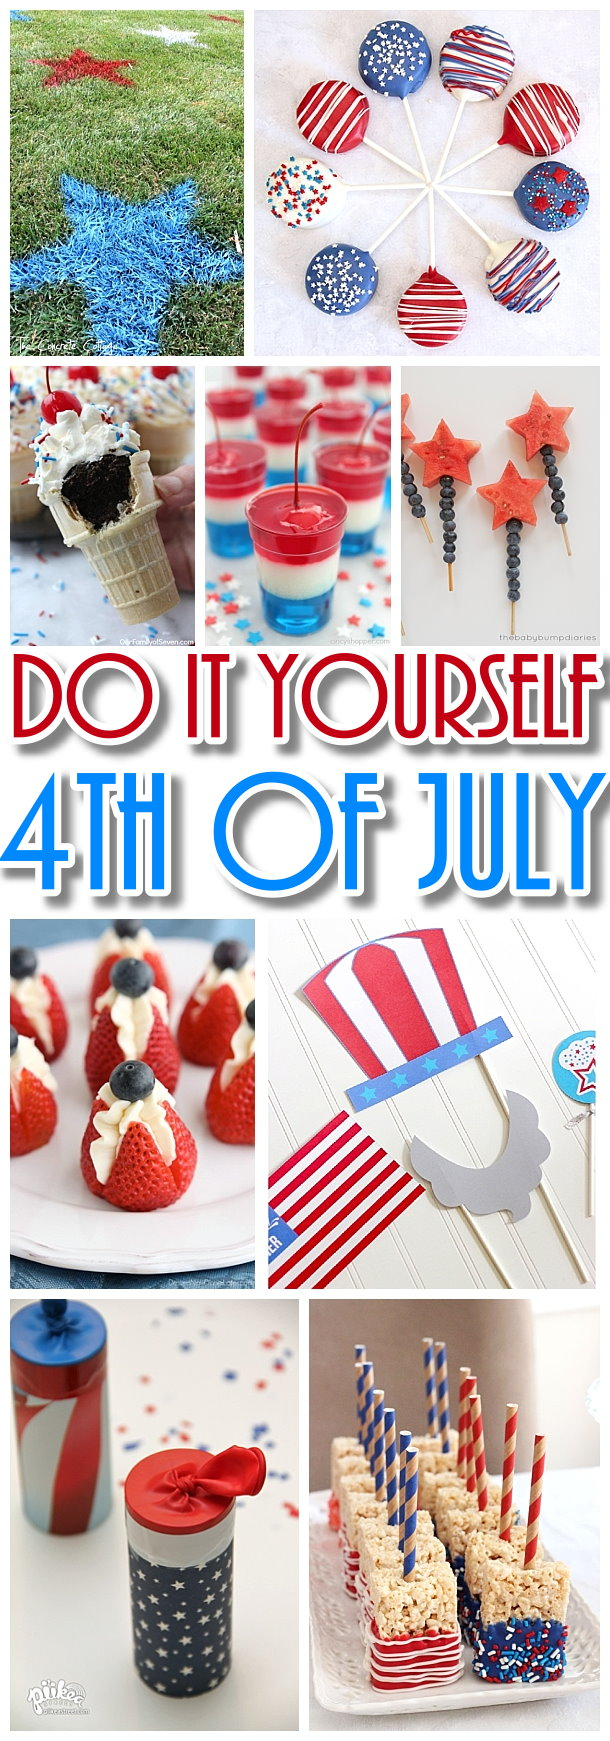 Do It Yourself 4th Of July The Best Diy Patriotic Red White And Blue Holiday Party Planning Ideas Dreaming In Diy